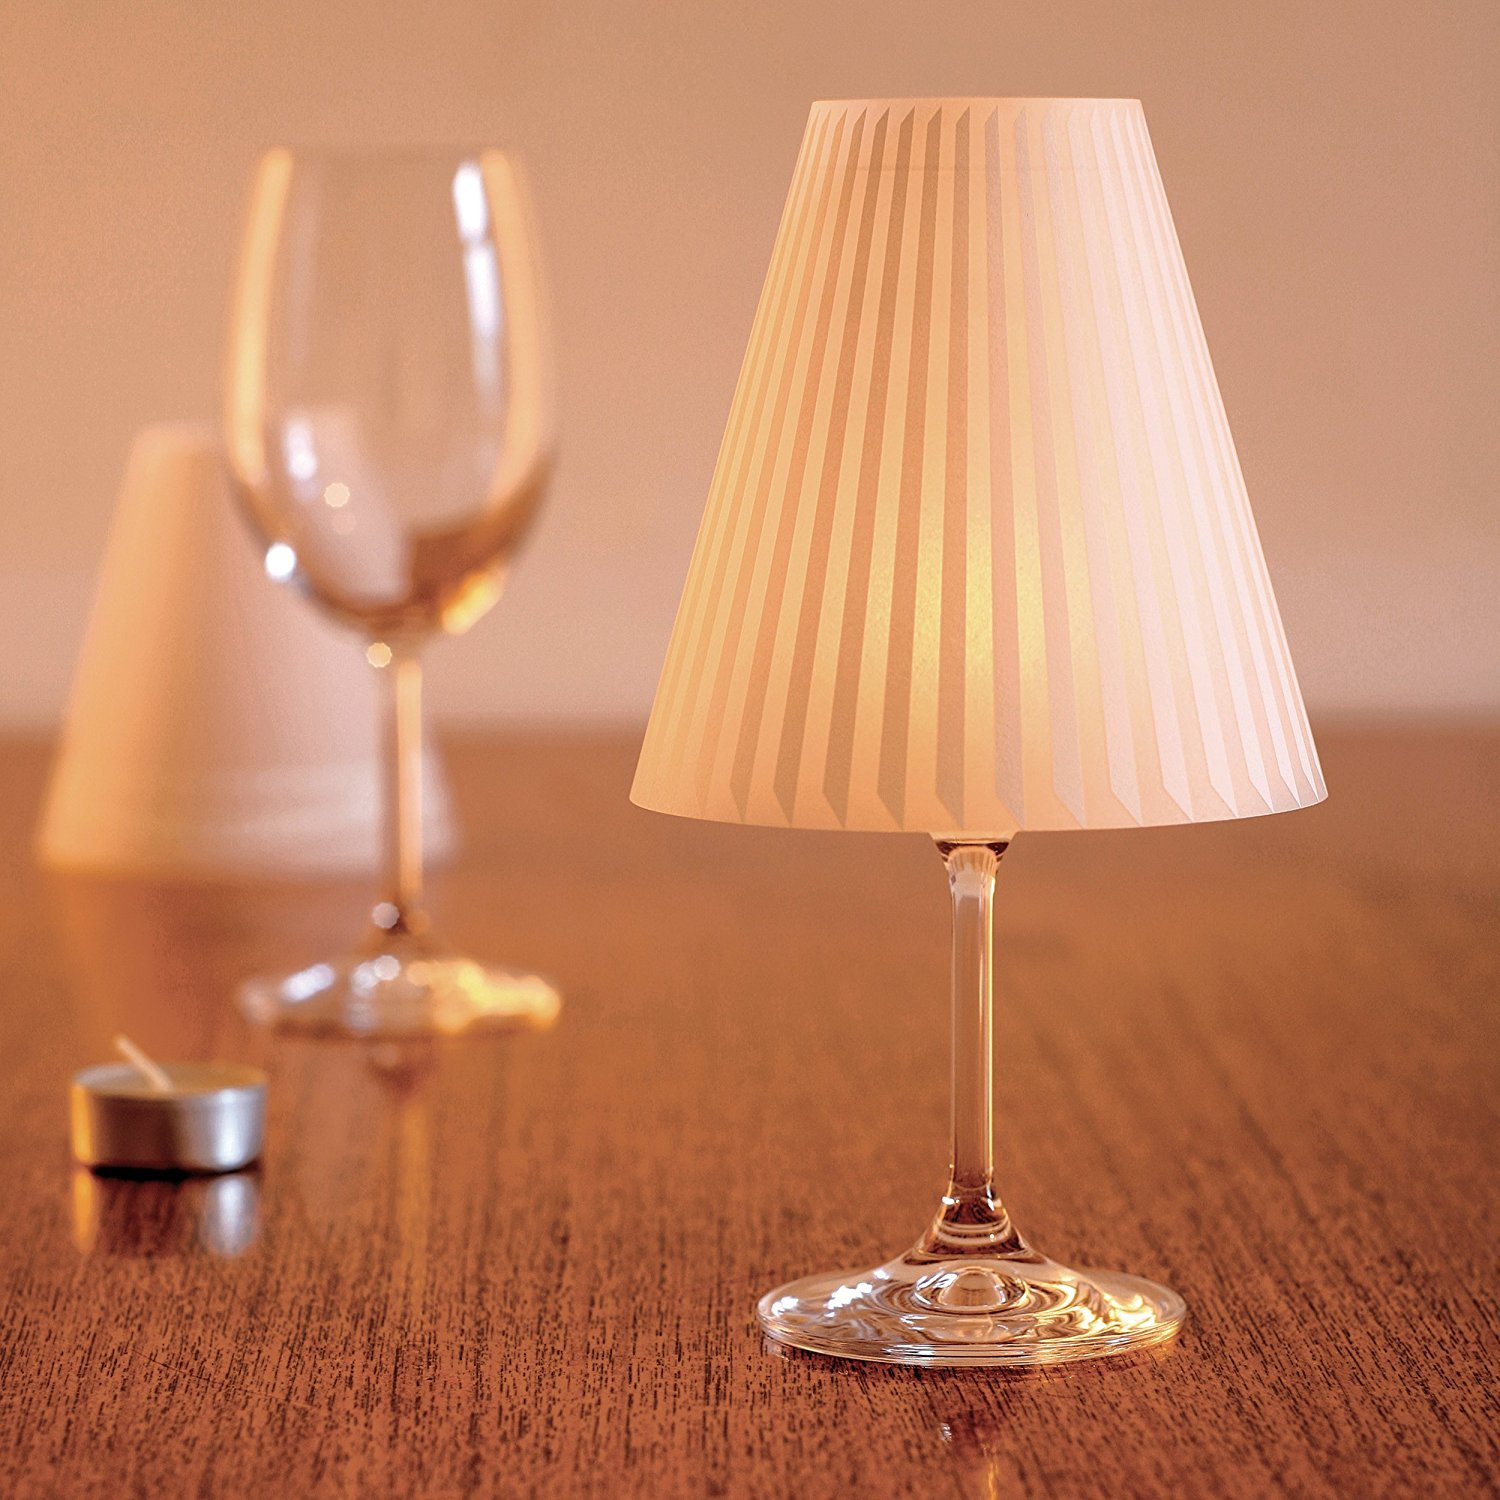 Amazon.com | Gorgeous Helen · 3 Enchanting Lampshades For Wine Glasses With  Tea Lights: Wine Glasses